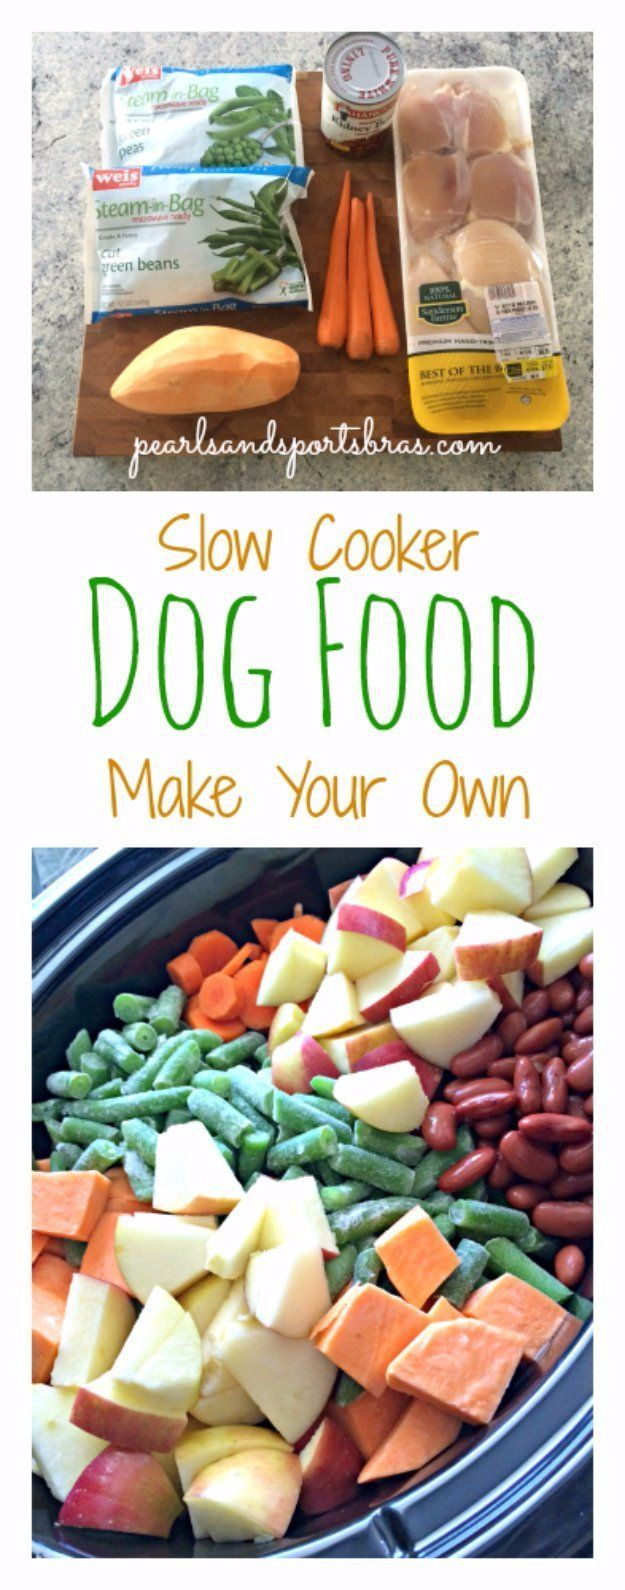 35 homemade pet recipes your dogs and cats will beg for cooker 35 homemade pet recipes your dogs and cats will beg for forumfinder Images